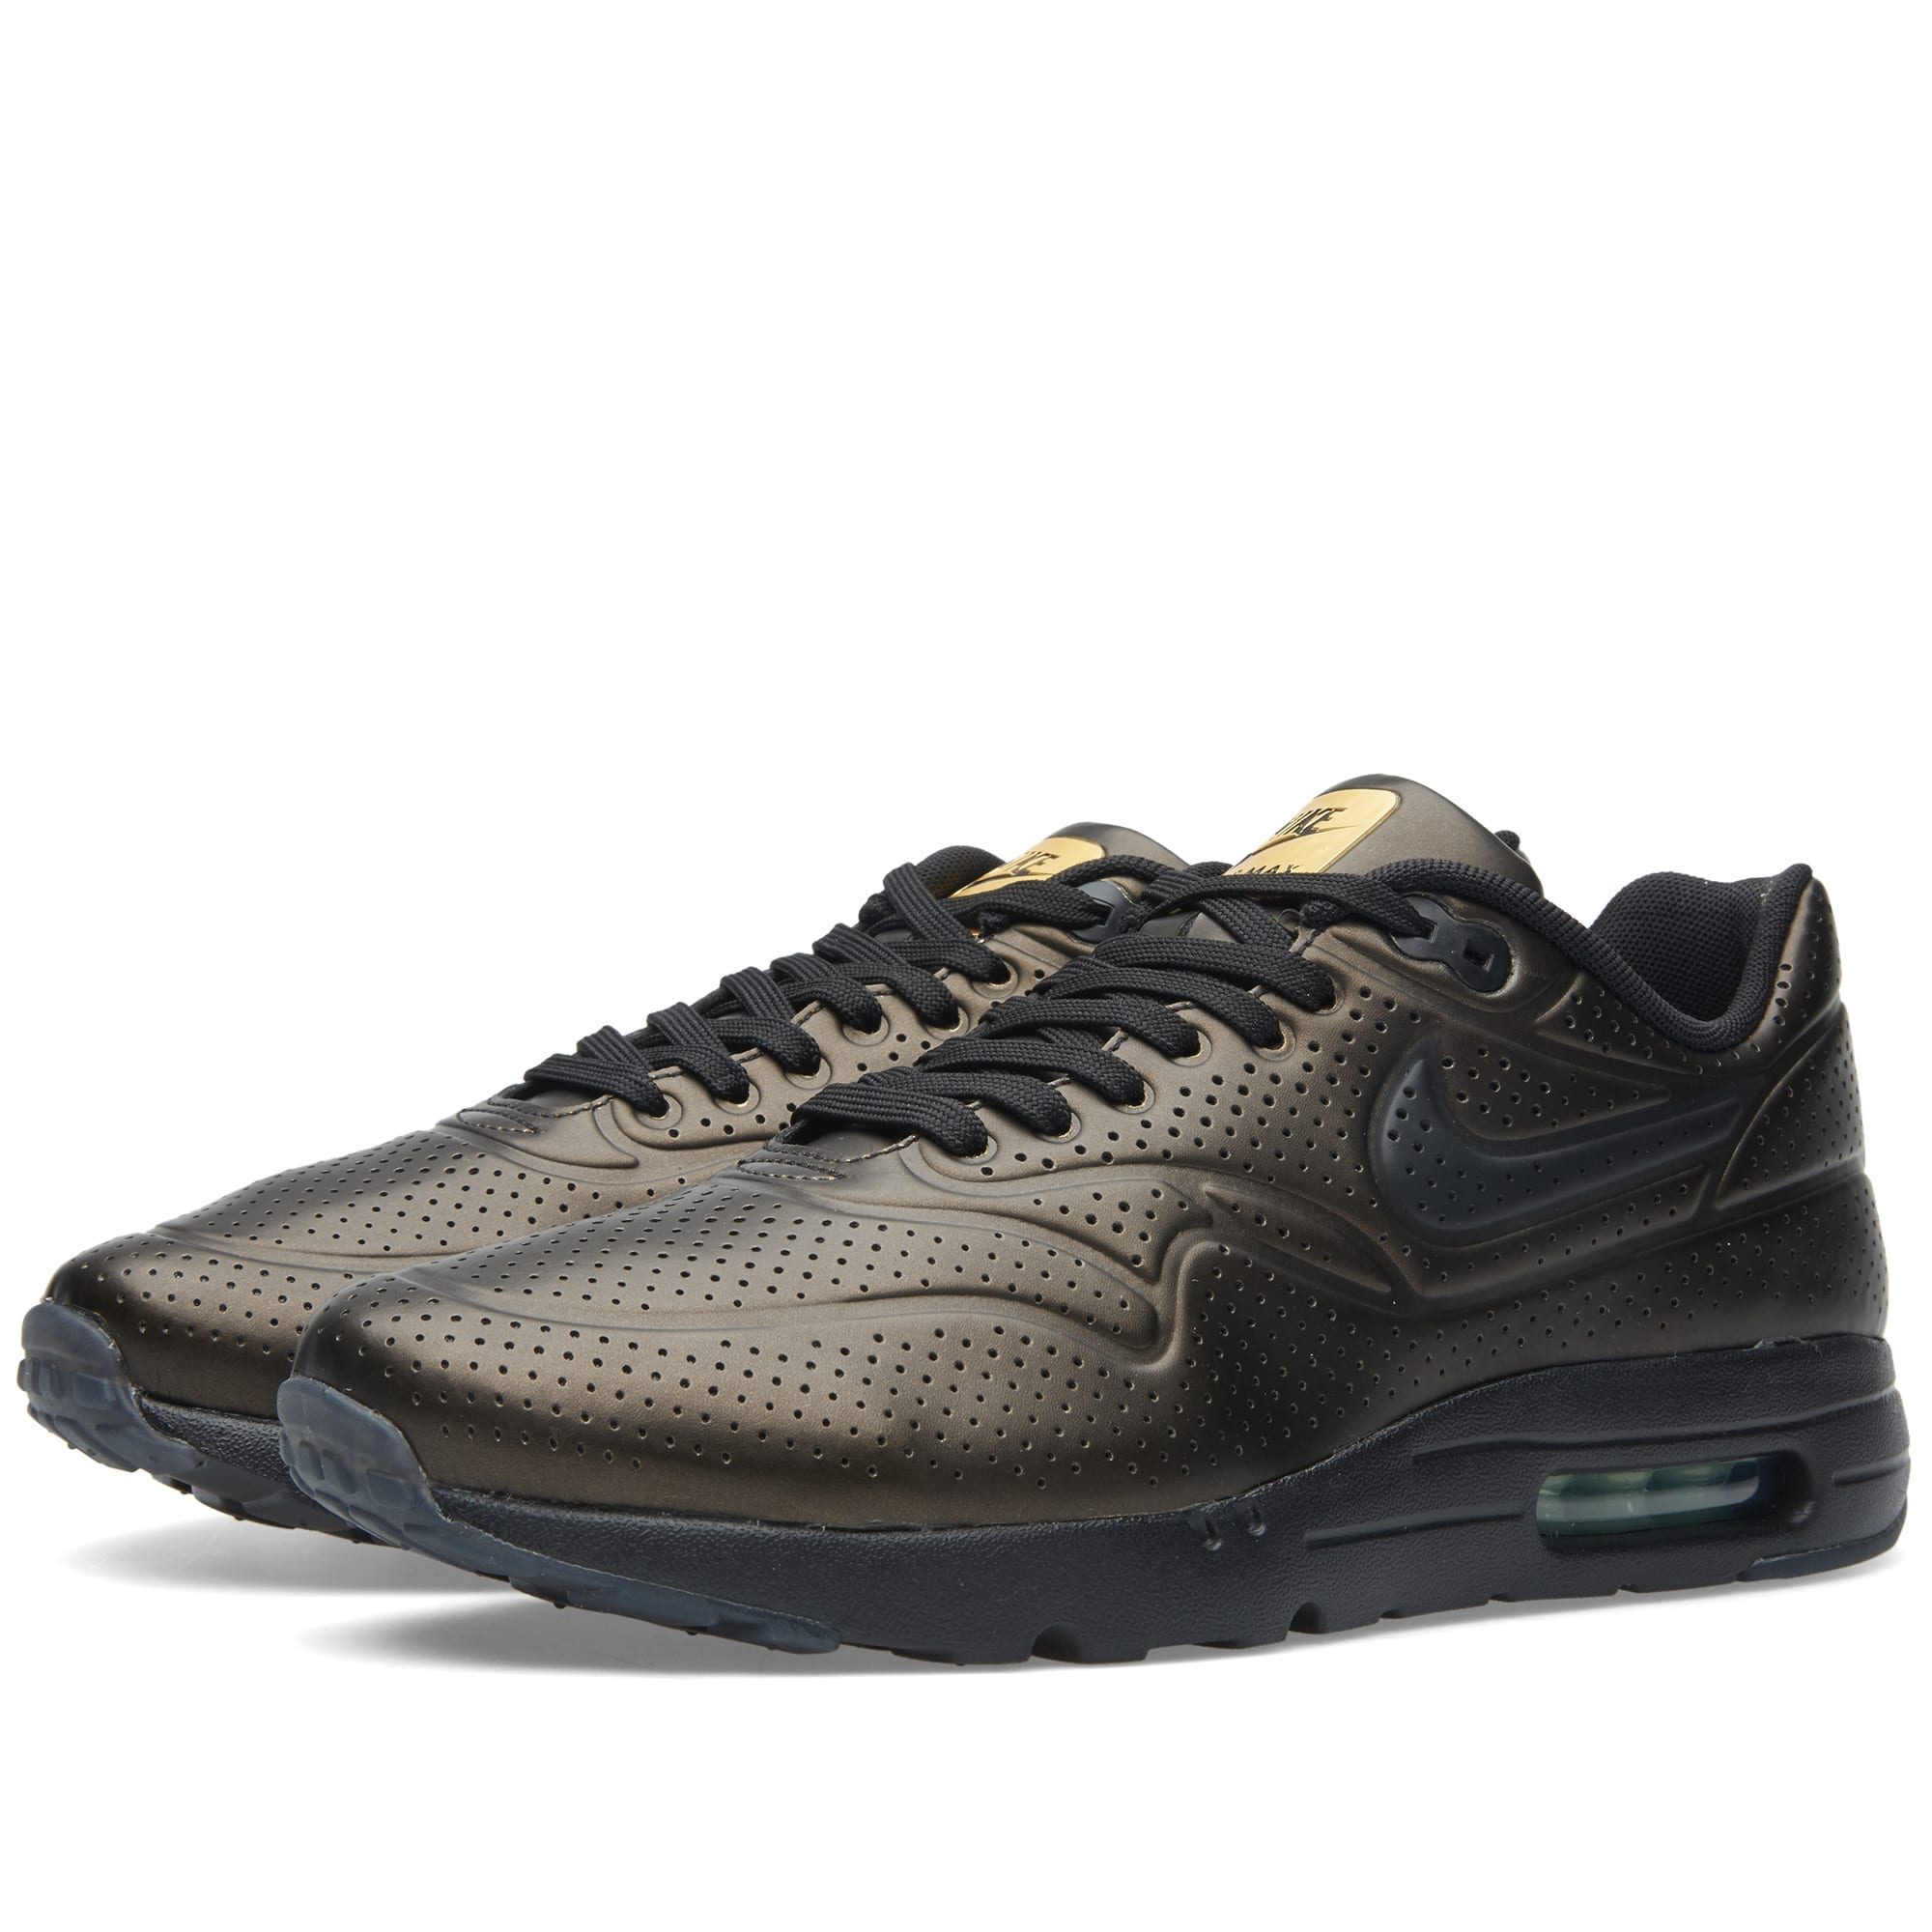 buy online ececa ceebf Nike Air Max 1 Ultra Moire Metallic Gold   Black   END.